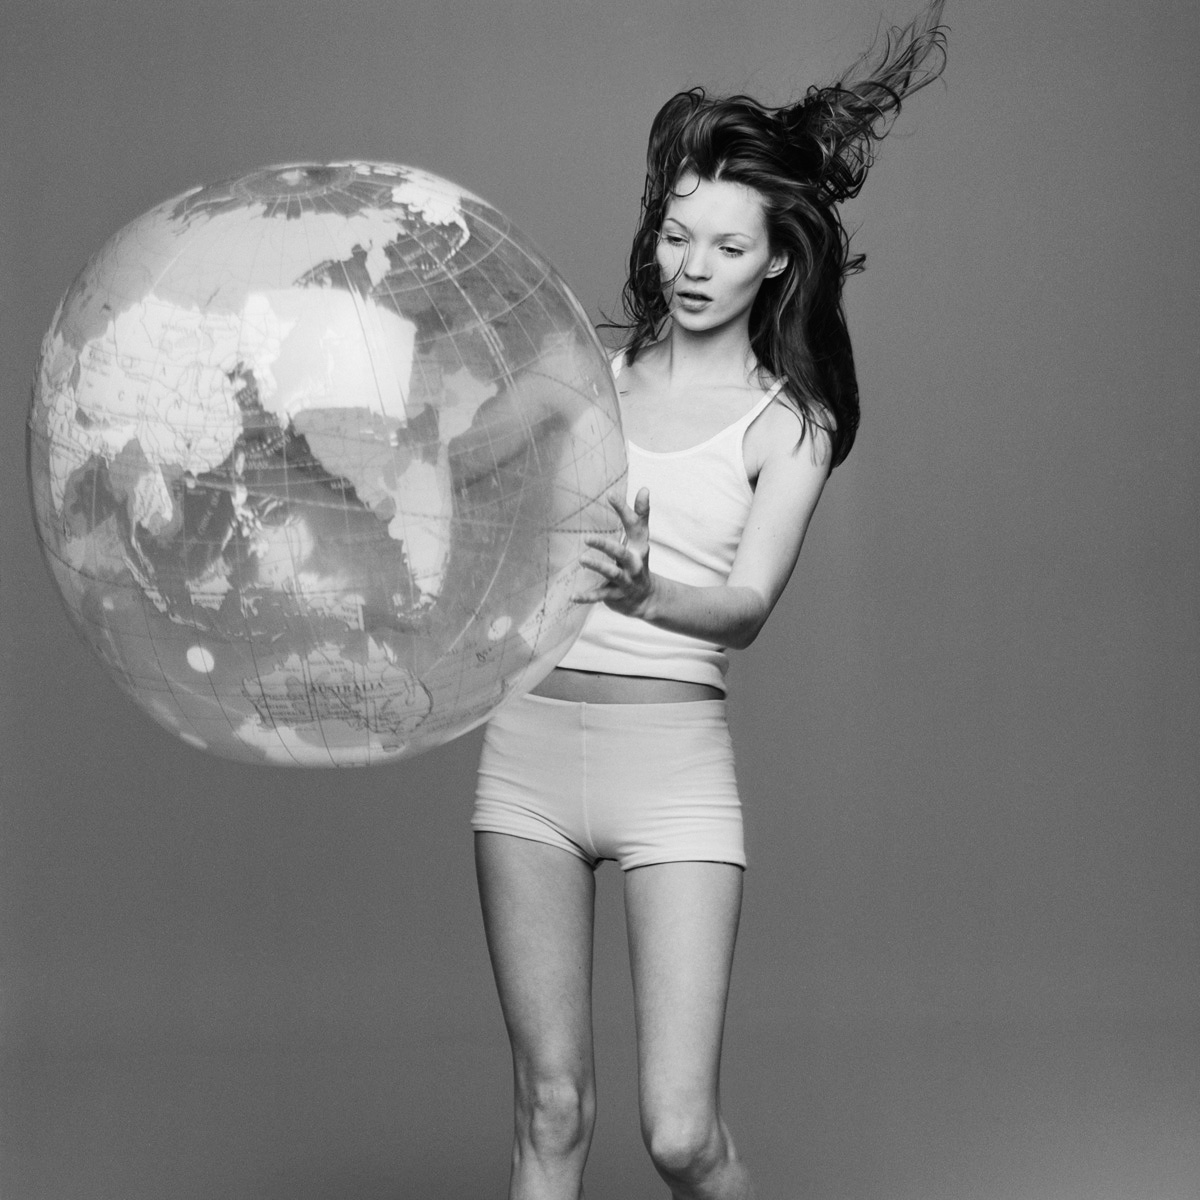 kate+moss+with+the+world+by+patrik+andersson-8.jpeg